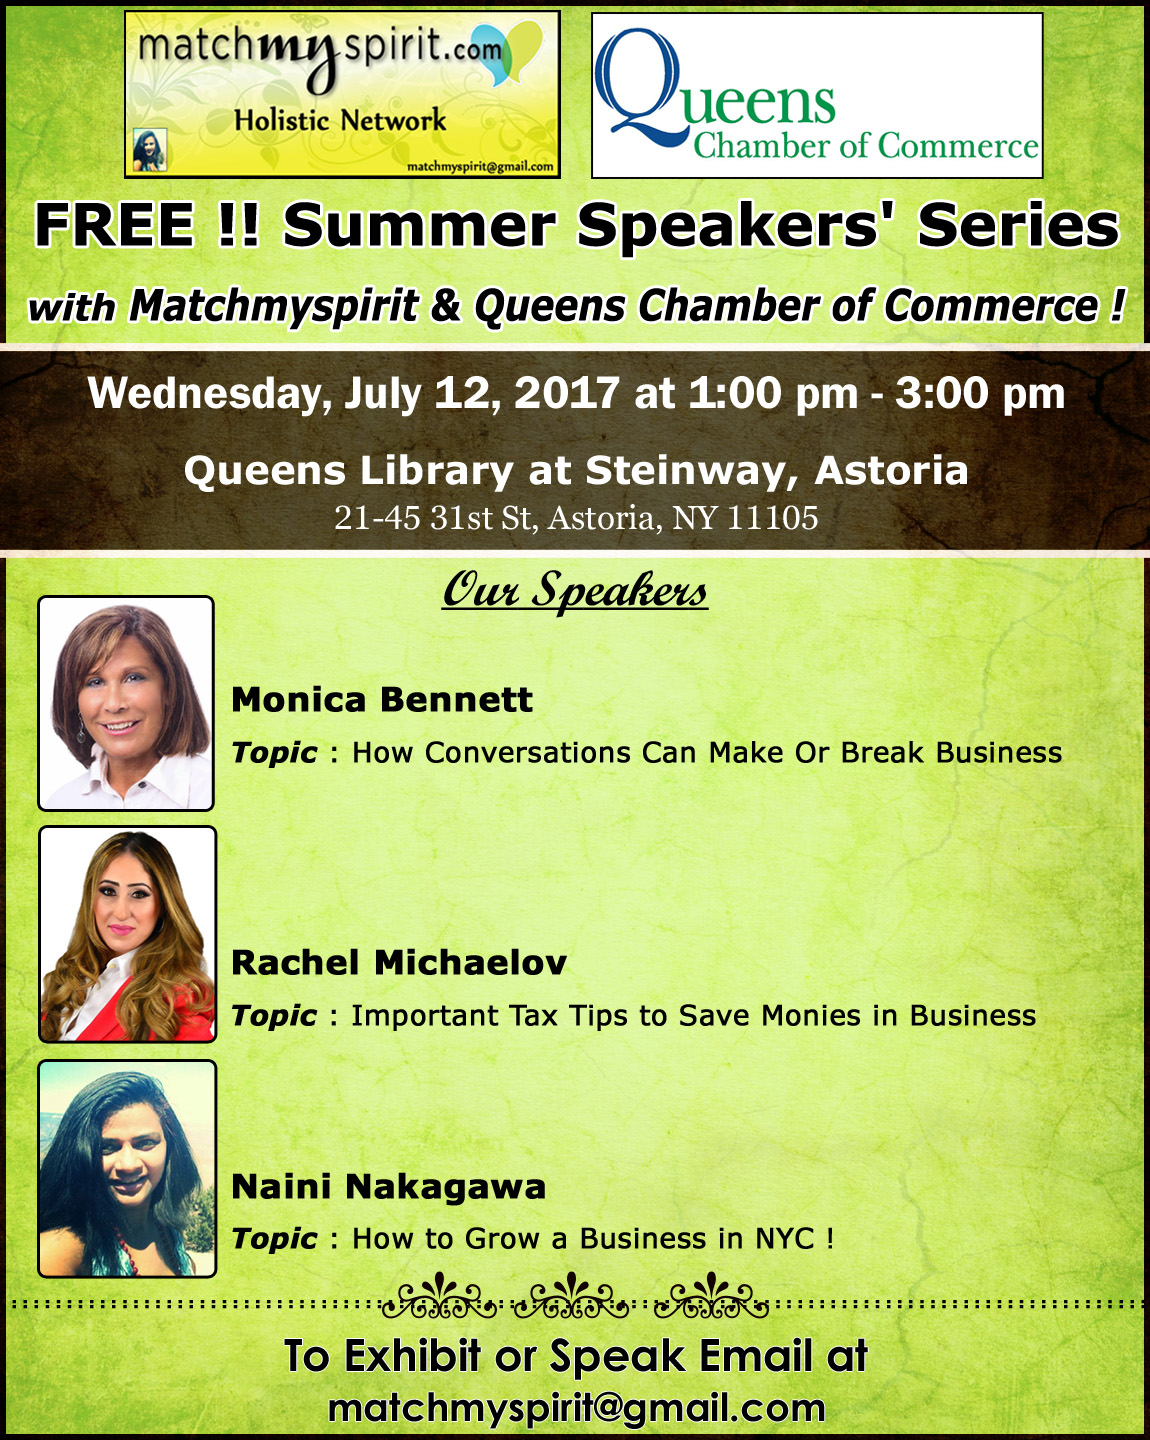 FREE!! Summer Speakers' Series with Matchmyspirit & Queens Chamber of Commerce !